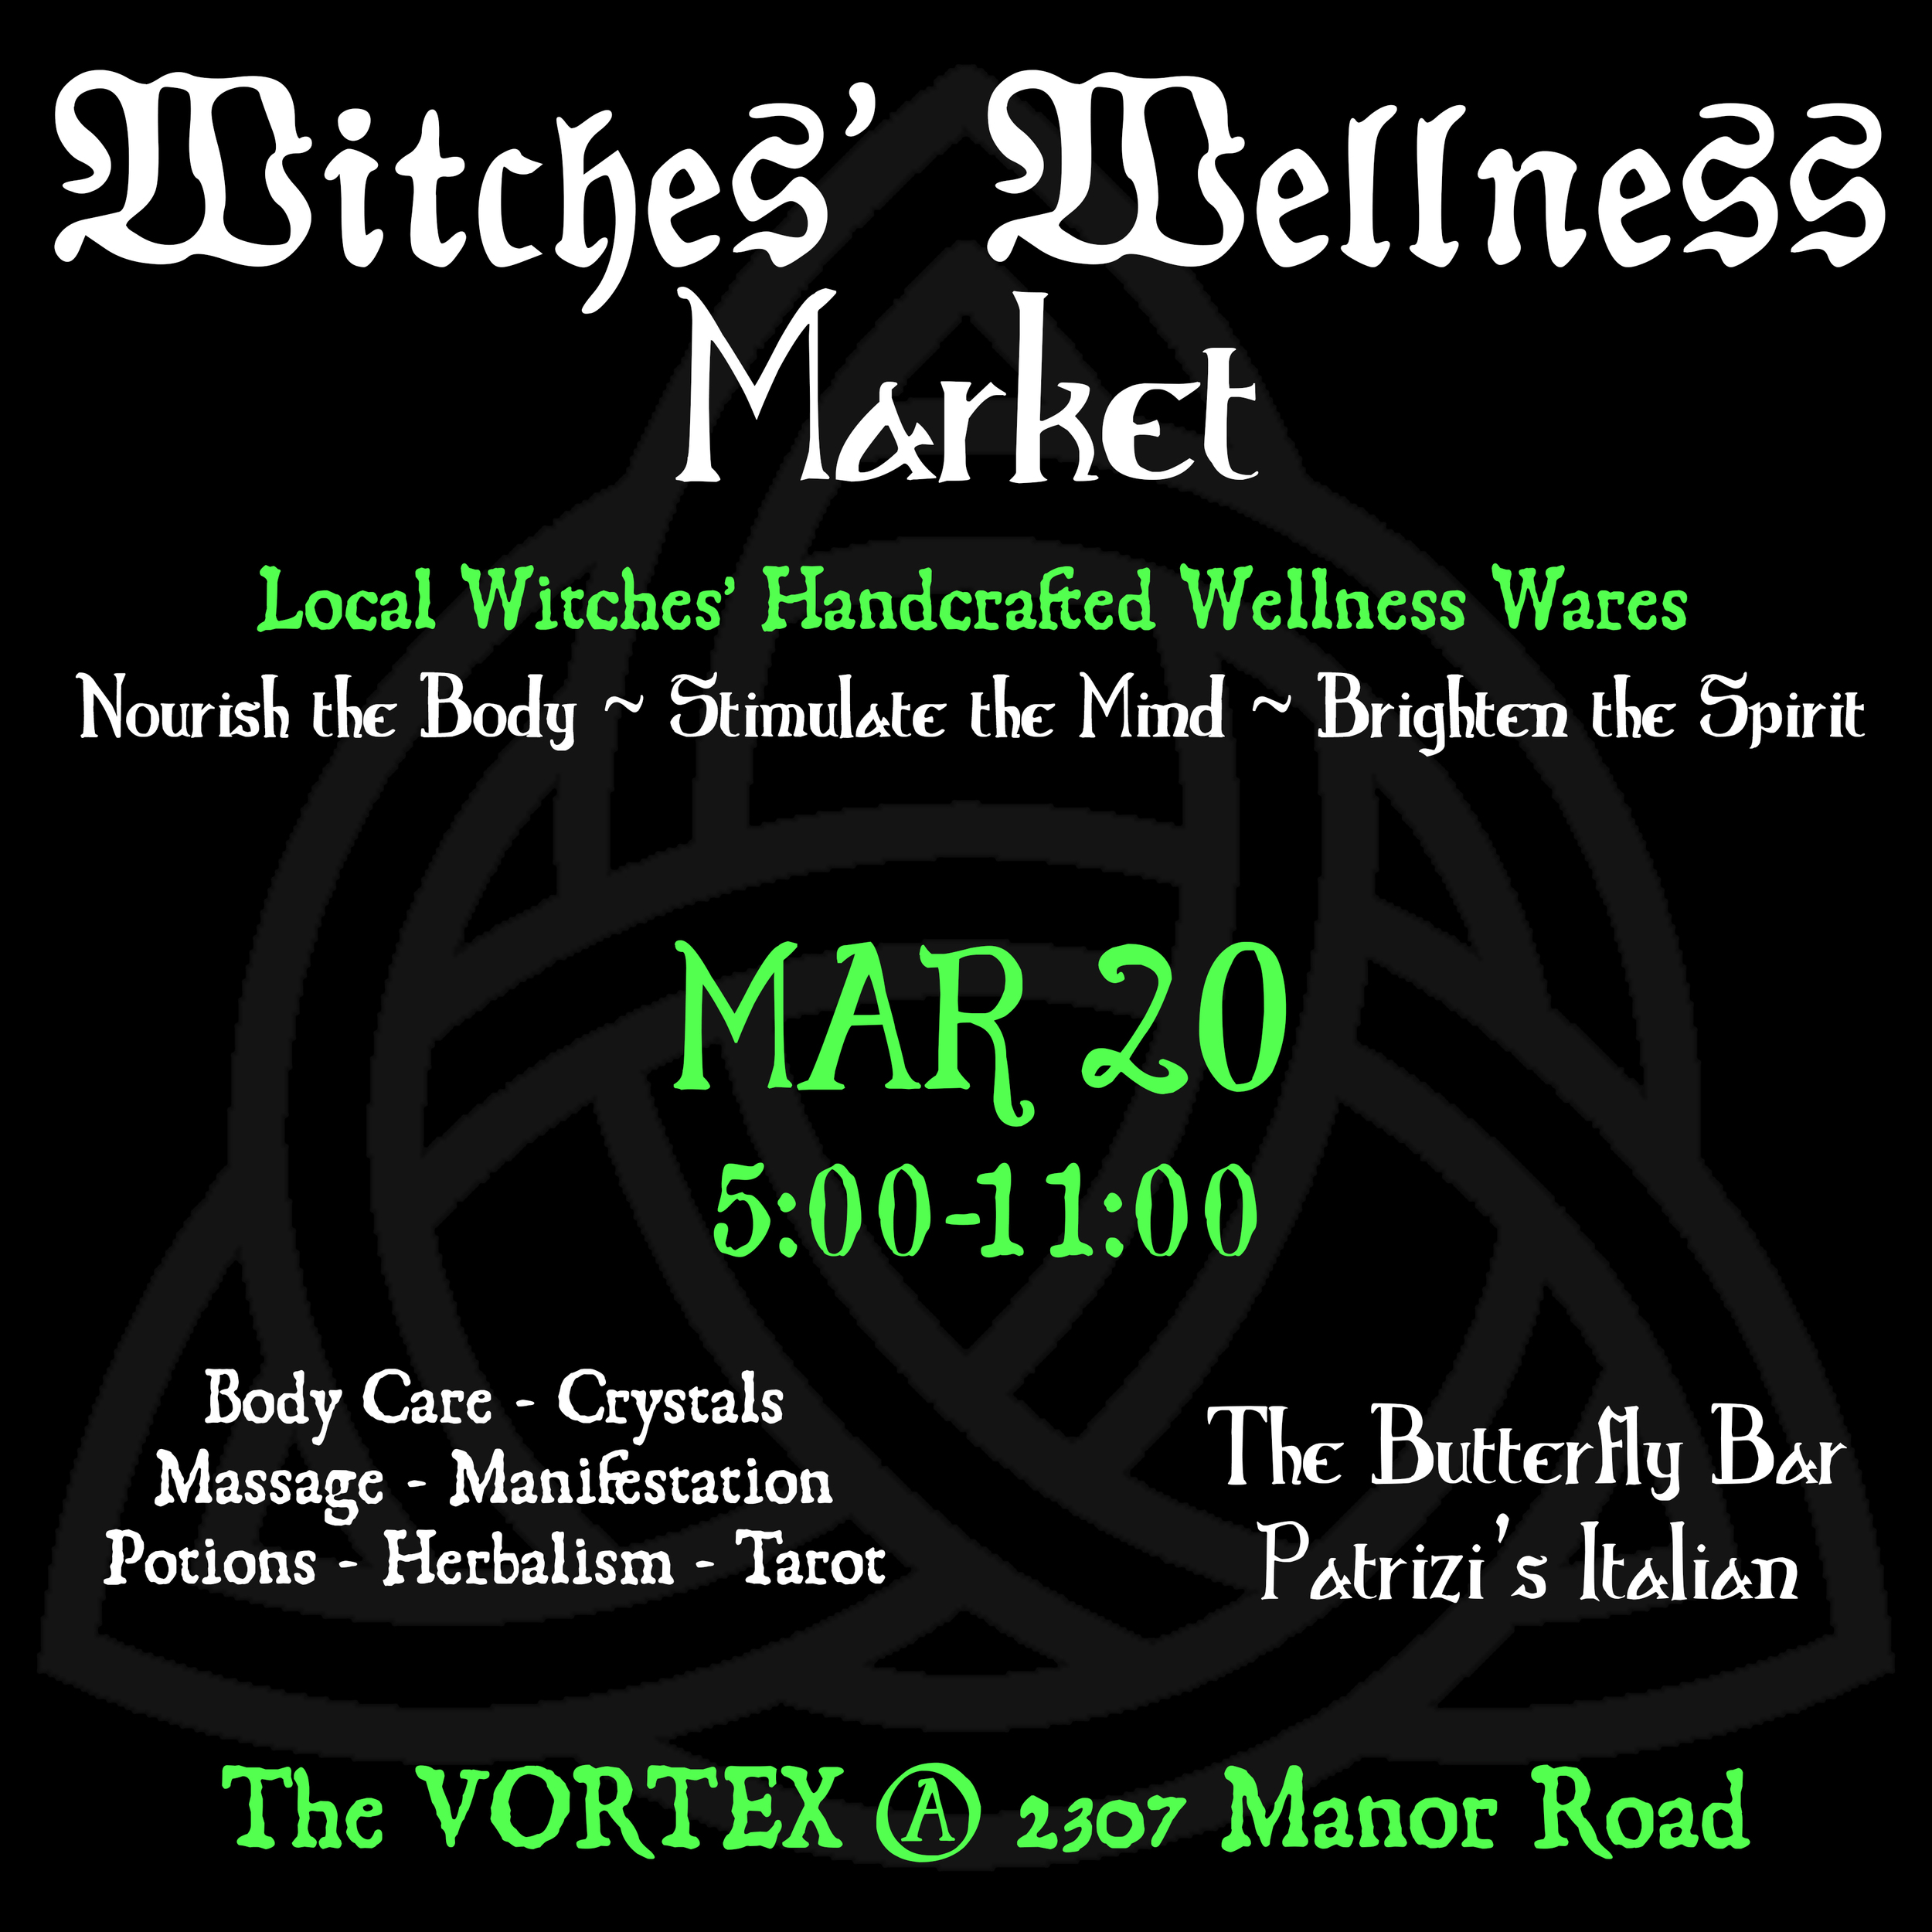 mar 20 witches wellness insta flyer